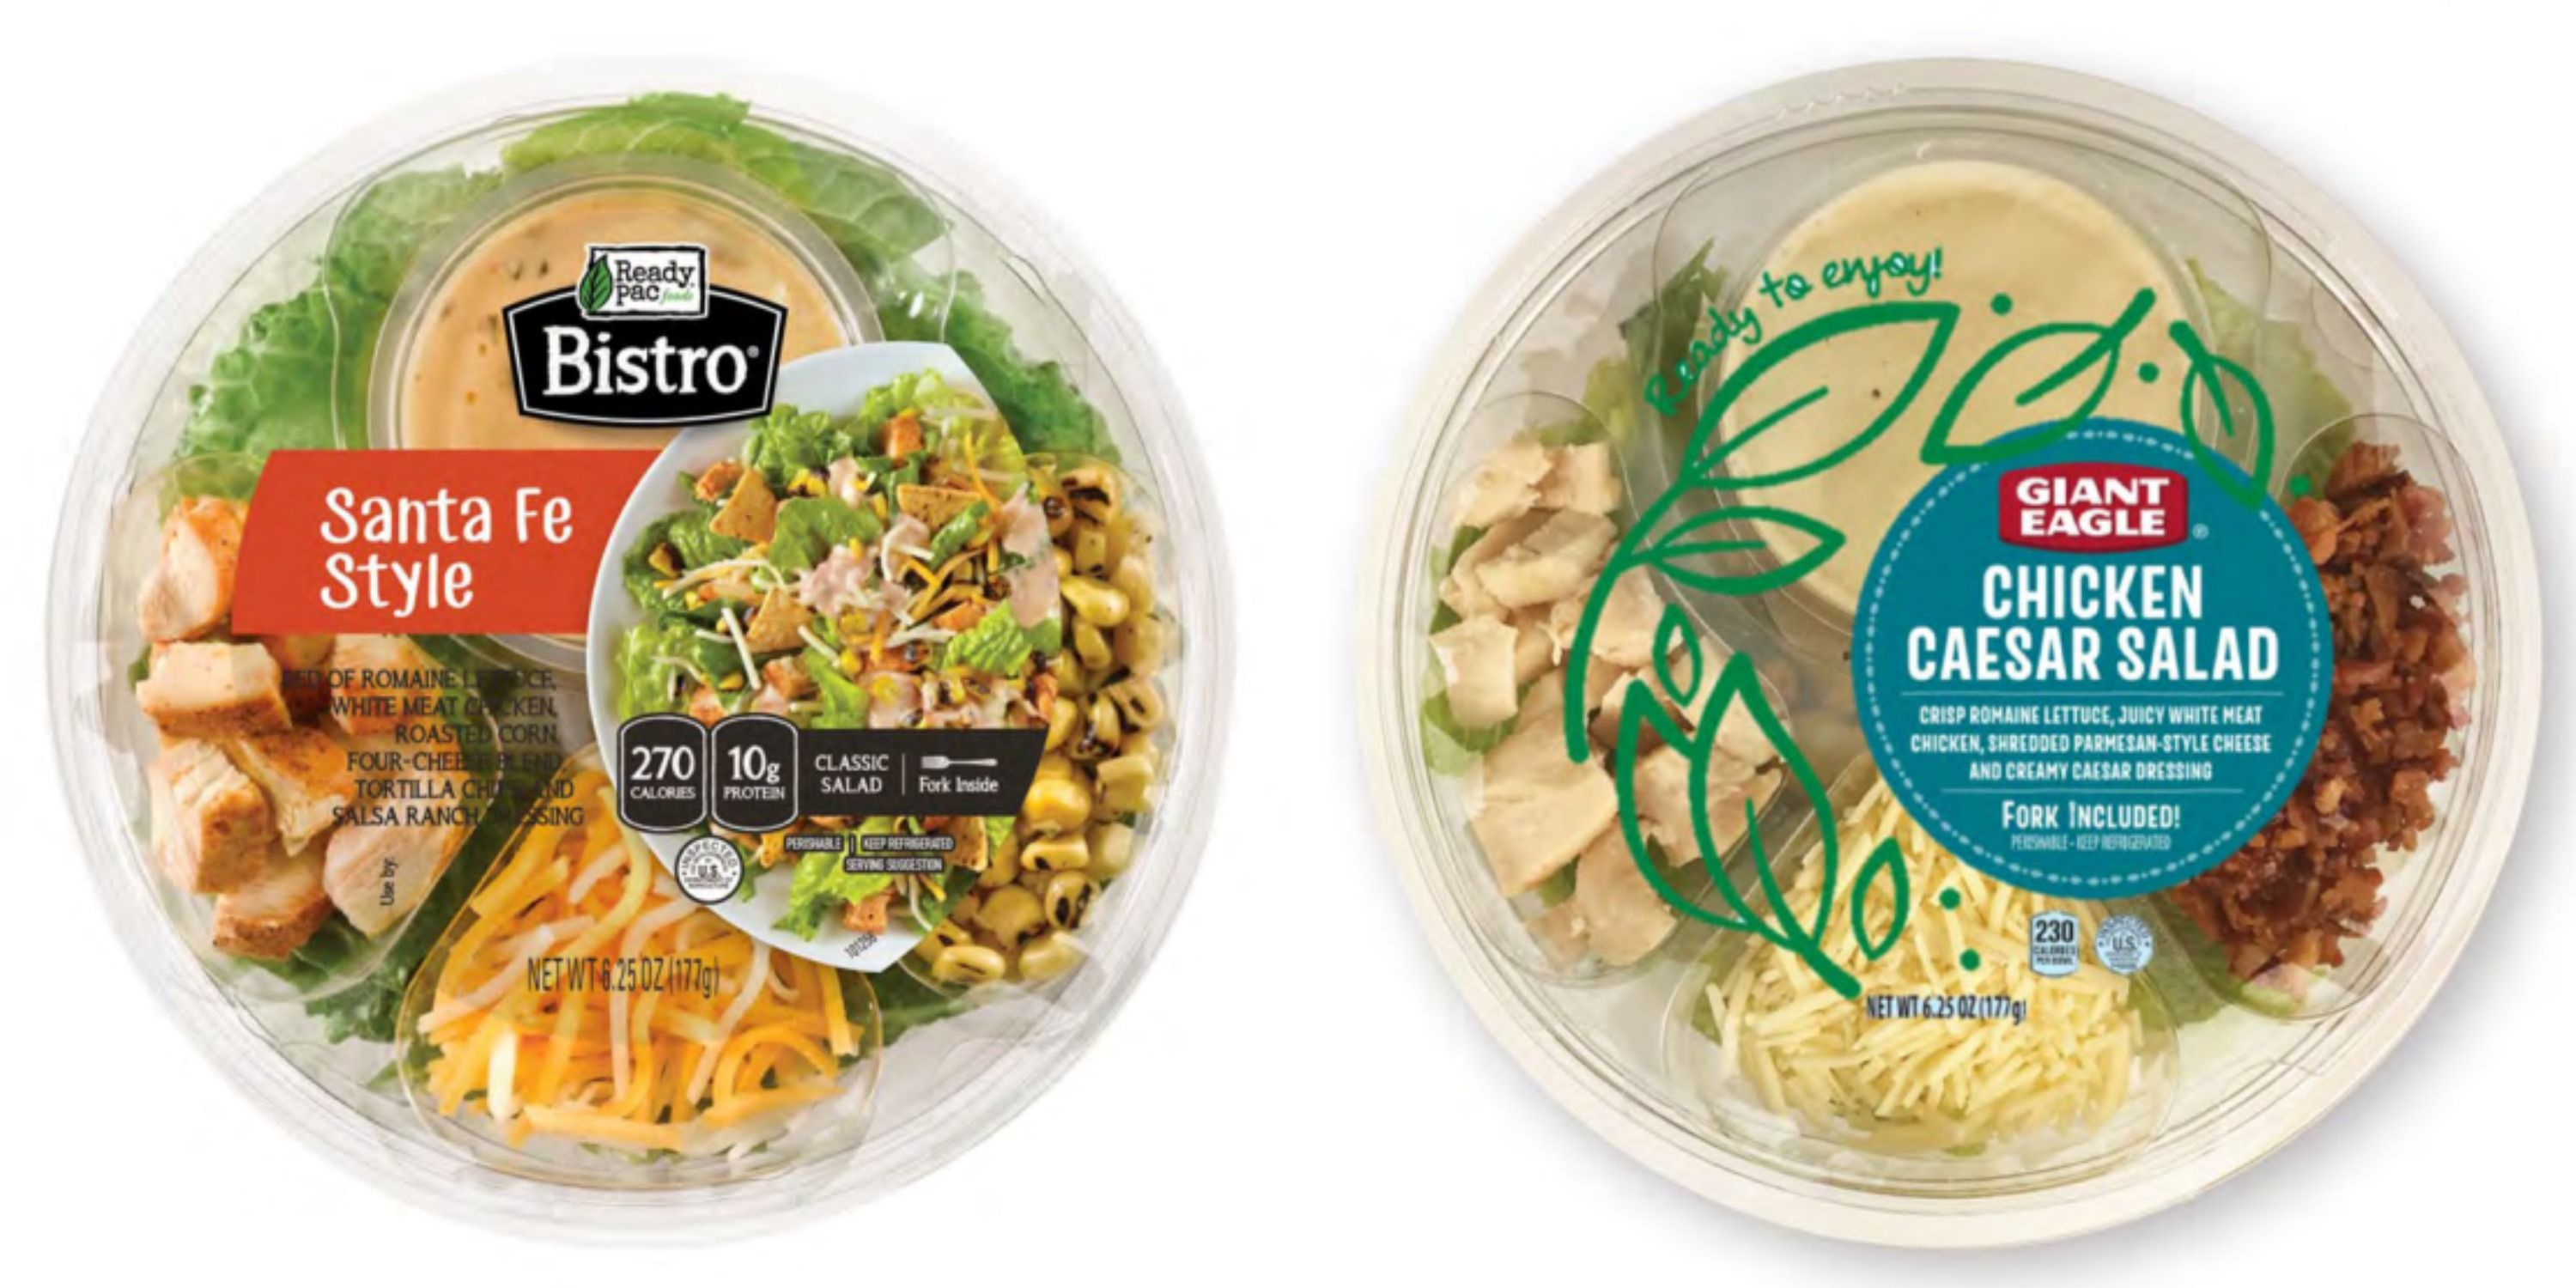 Almost 100,000 Pounds Of Salad Sold At Target And Aldi Have Been Recalled Over E. Coli Concerns